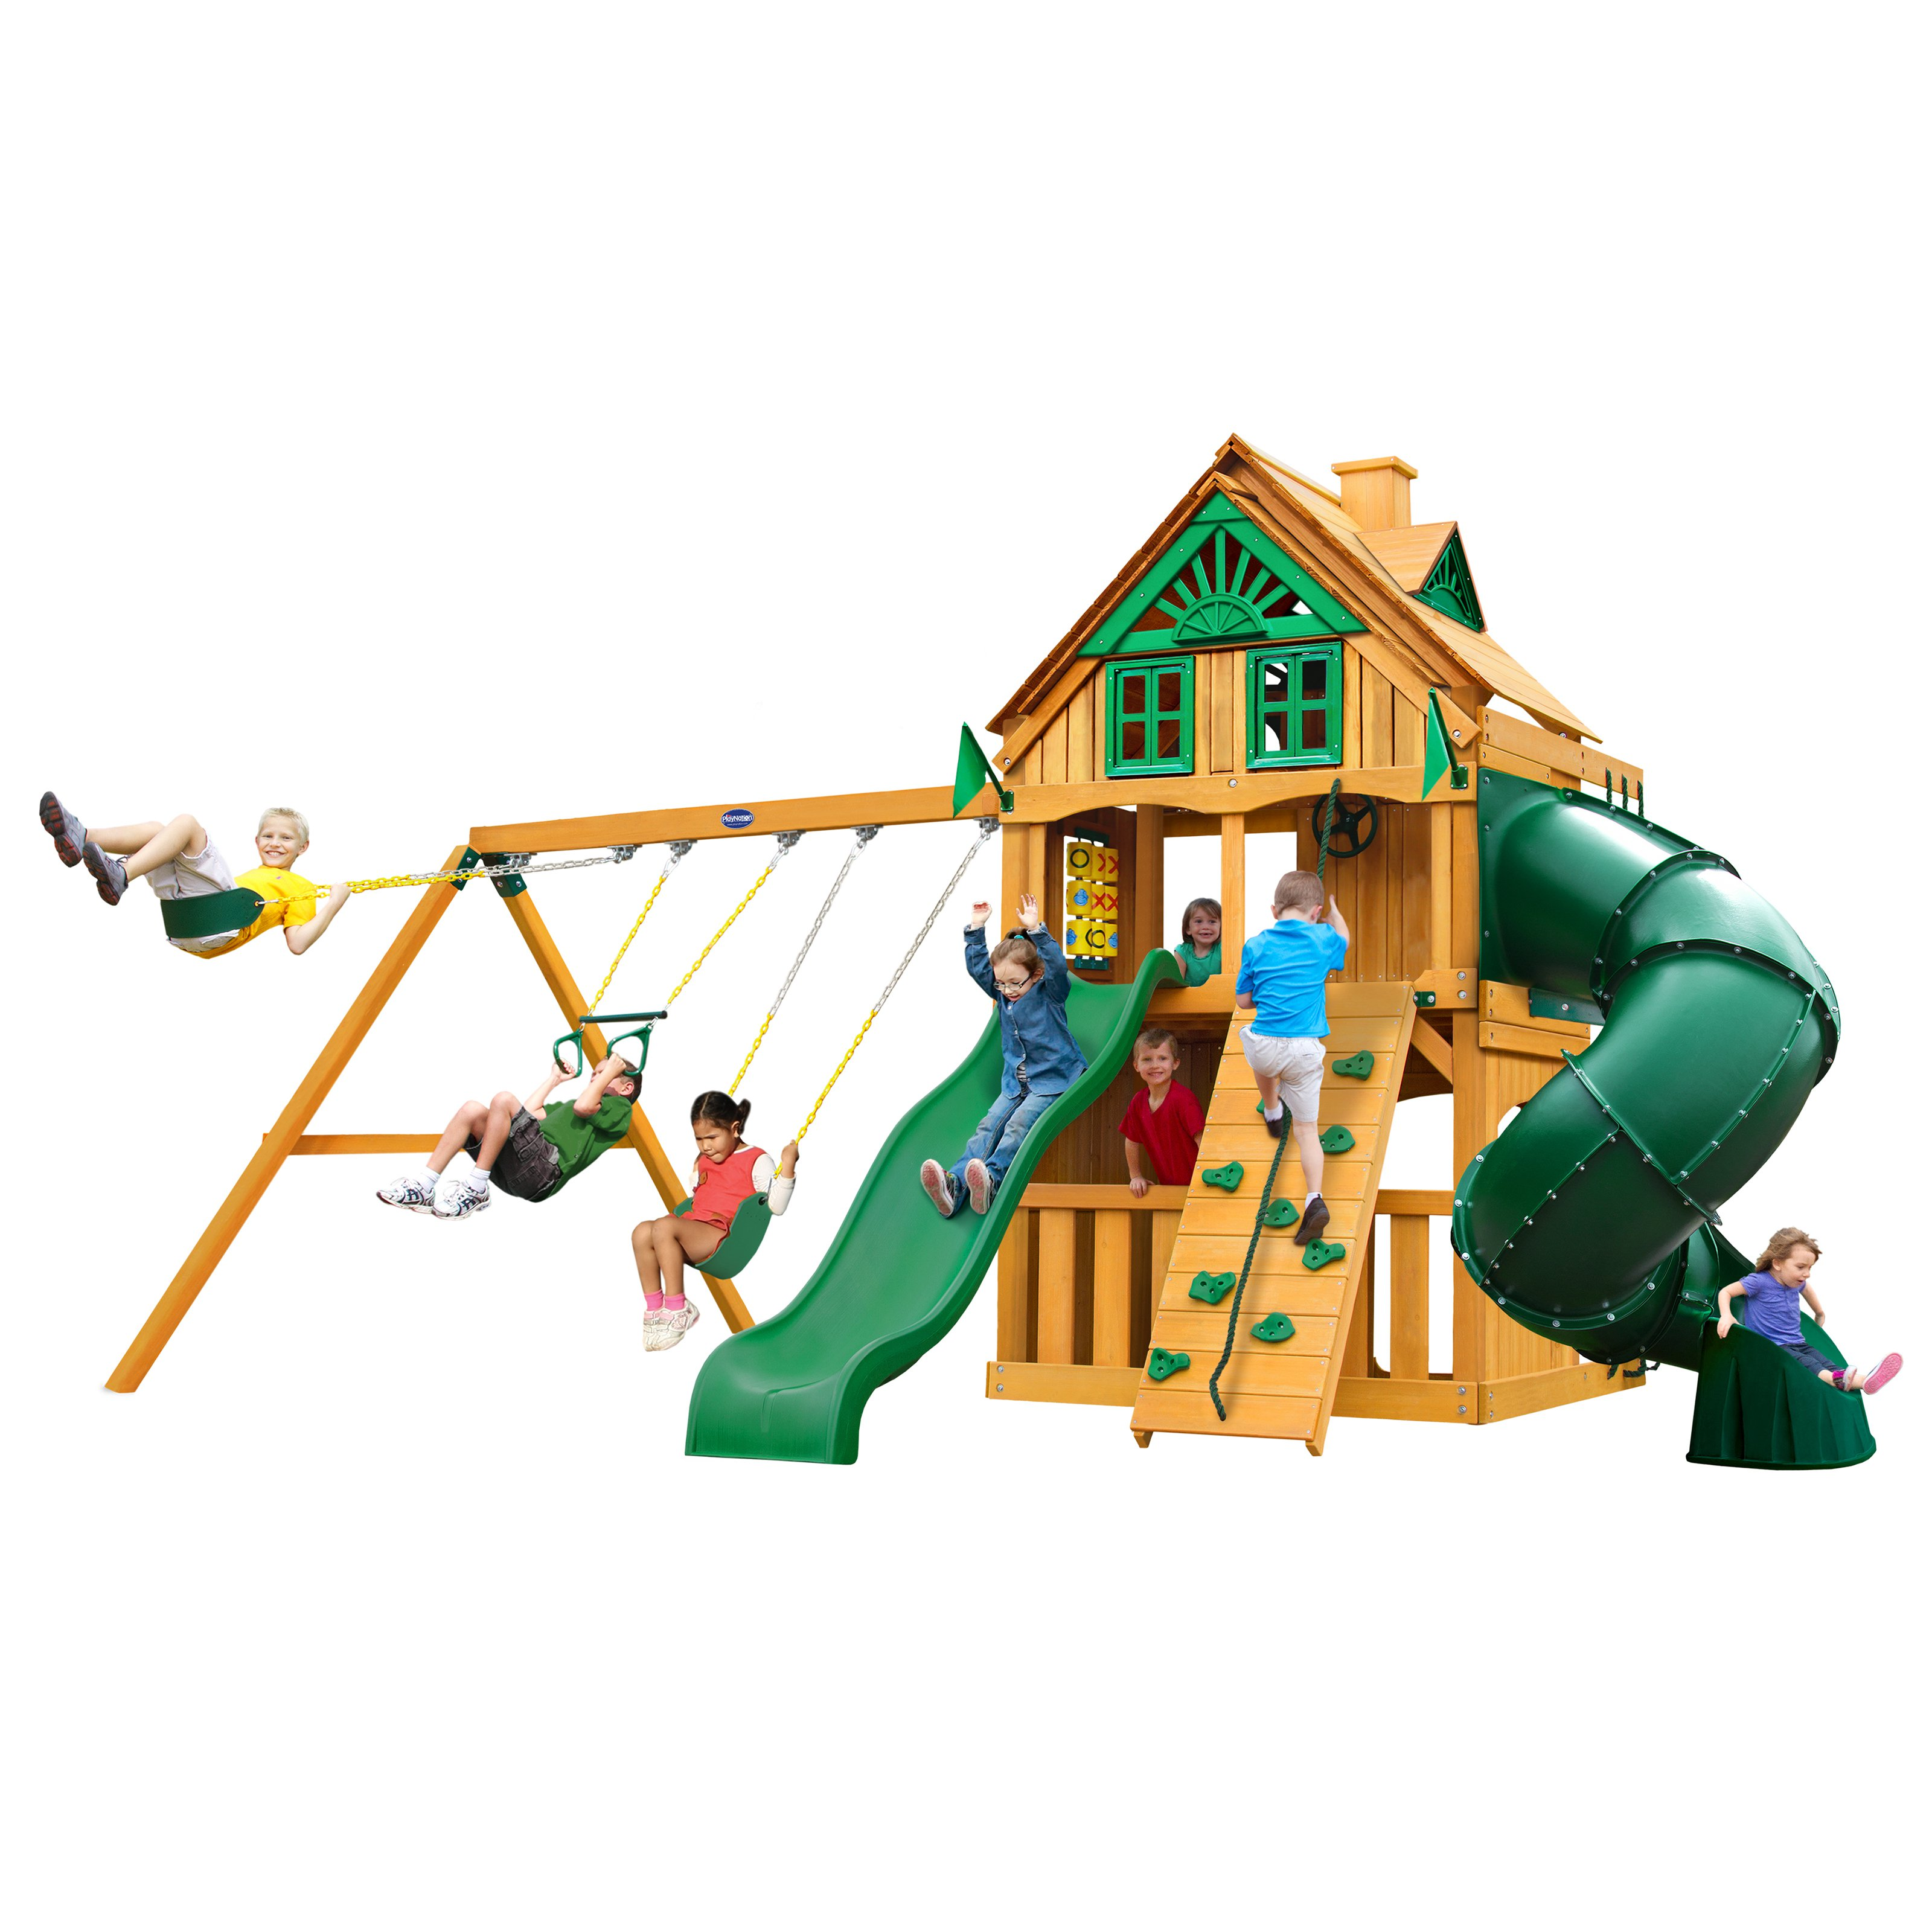 Gorilla Playsets Mountaineer Clubhouse Treehouse Swing Set with Fort Add-On